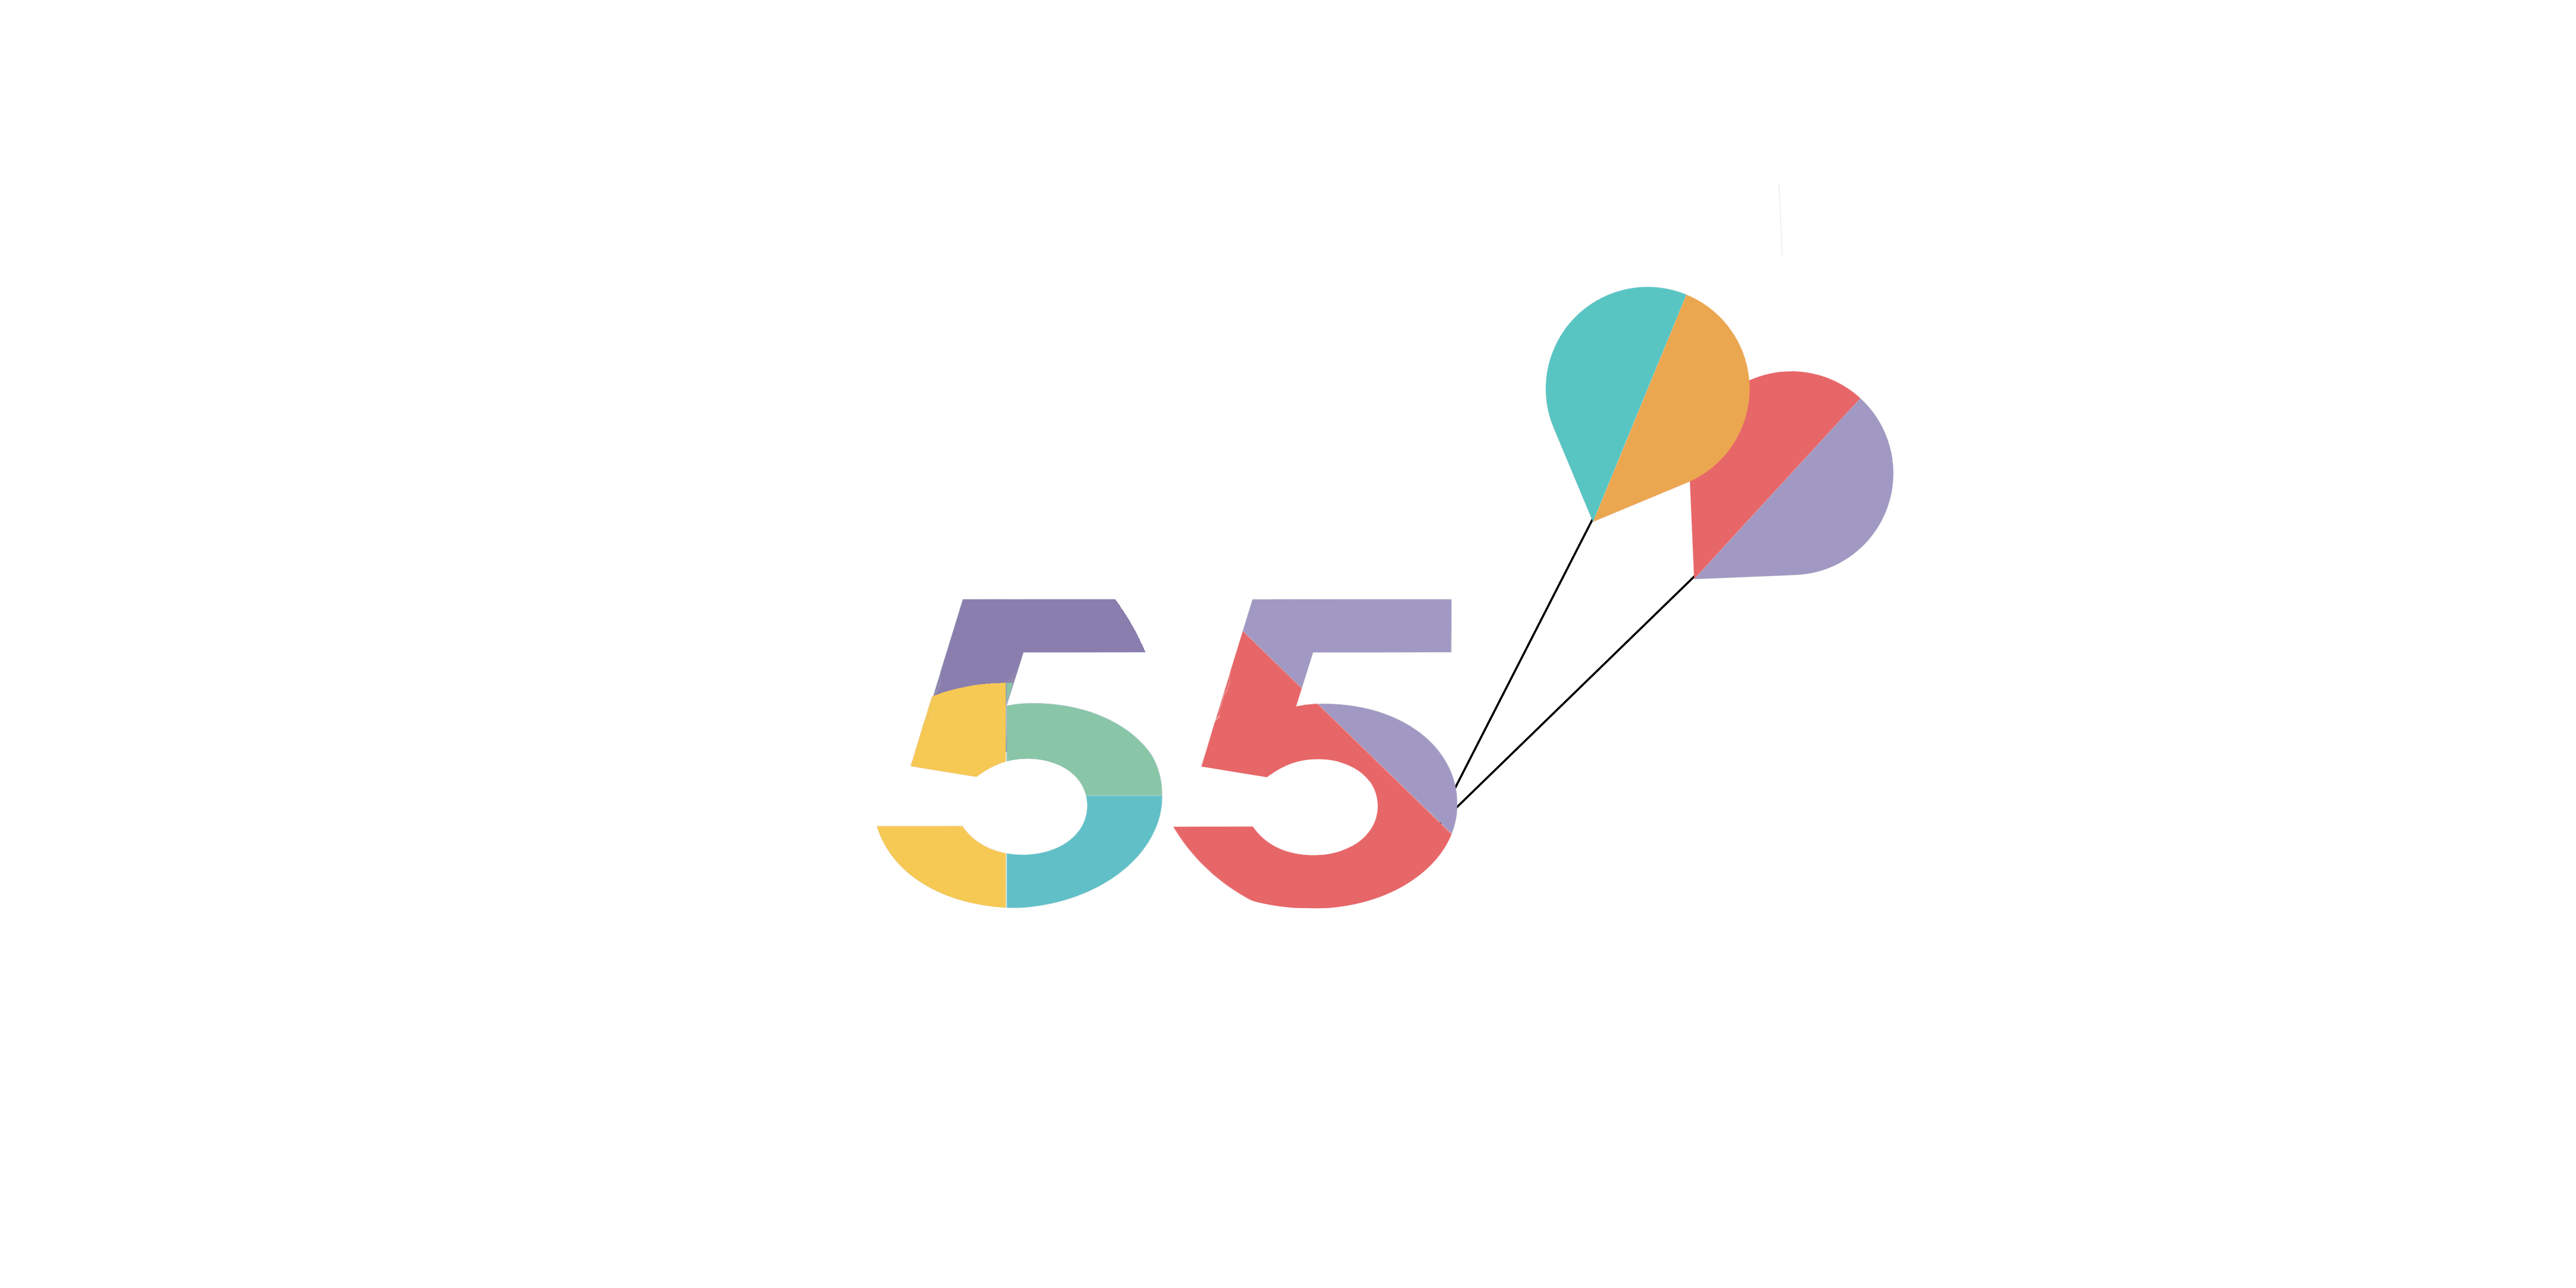 the words Arena 55 with coloured balloons attached